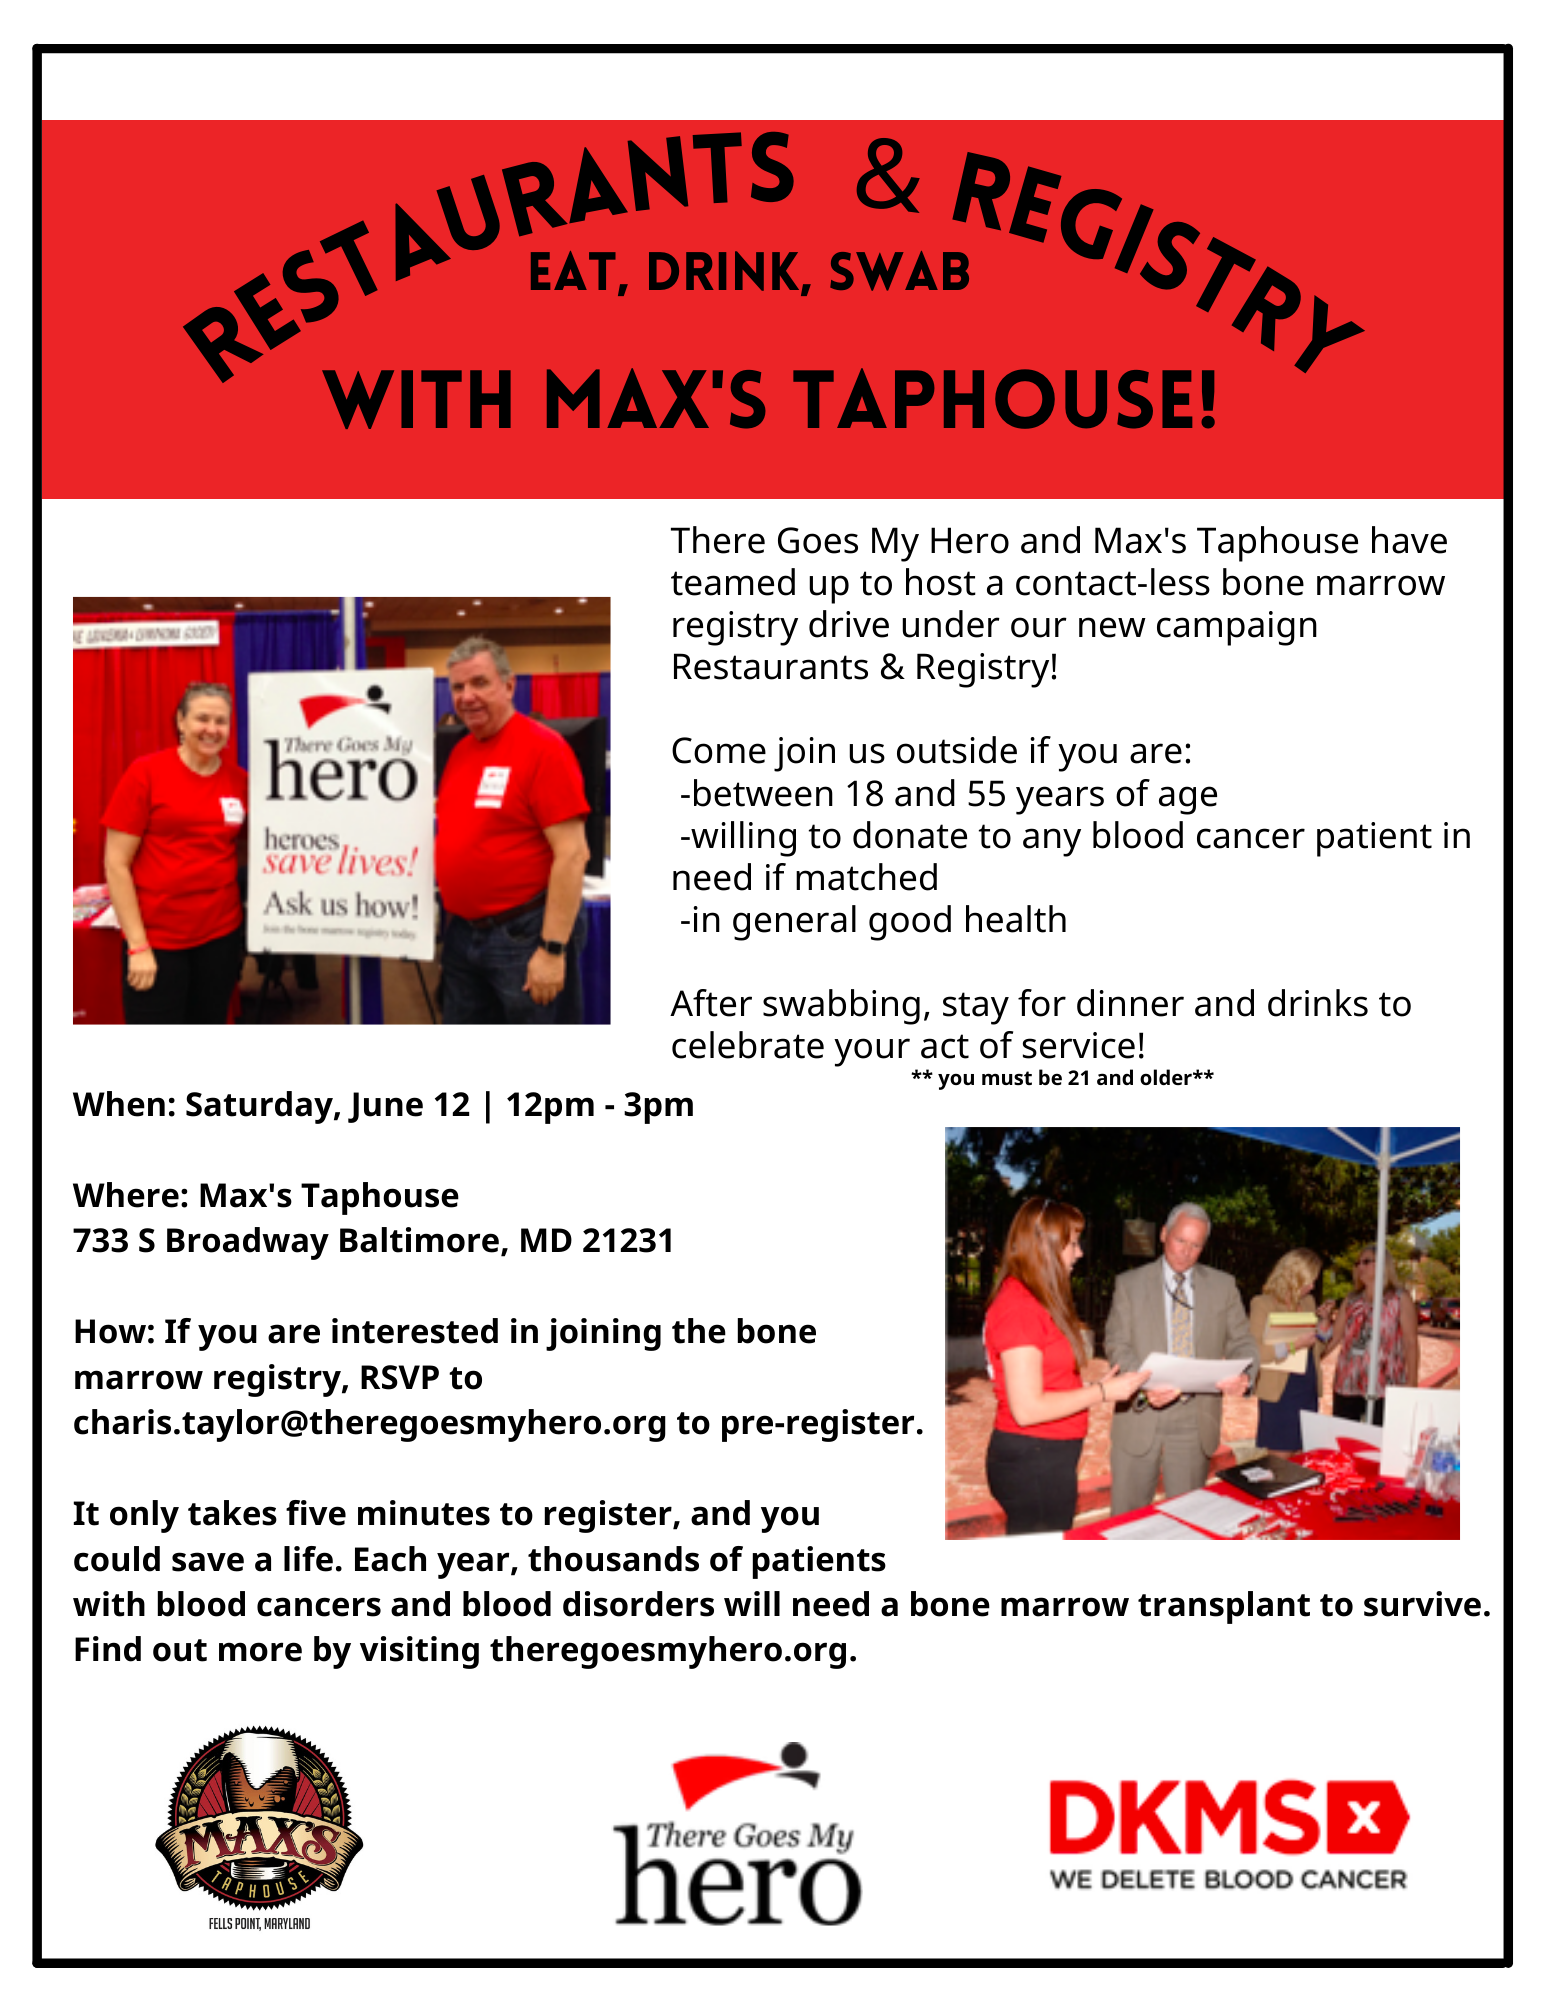 Max's Taphouse Registry Drive